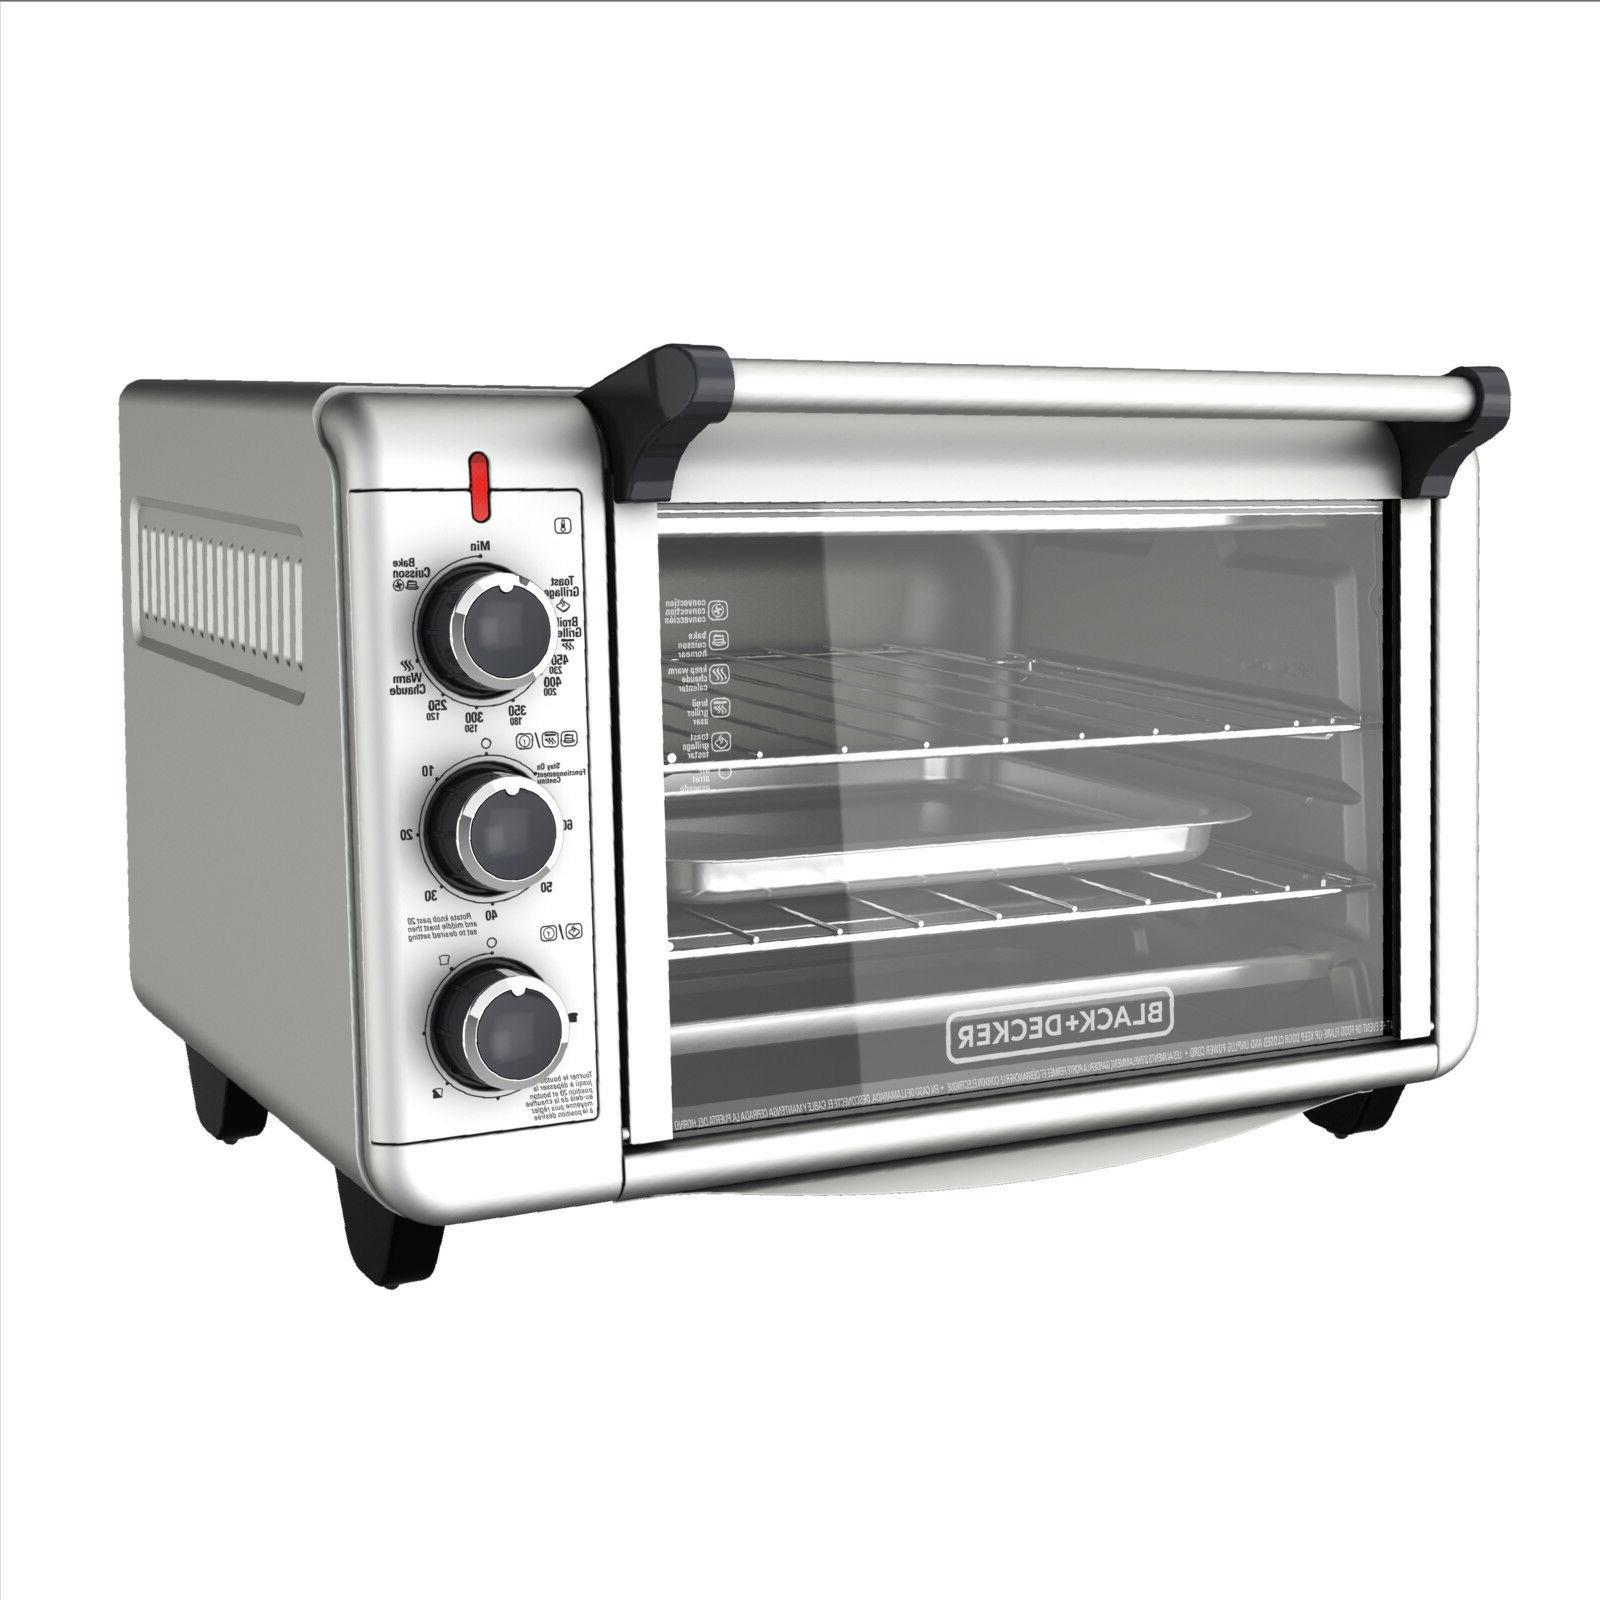 Black Decker Convection Countertop Oven Stainless Steel Kitc